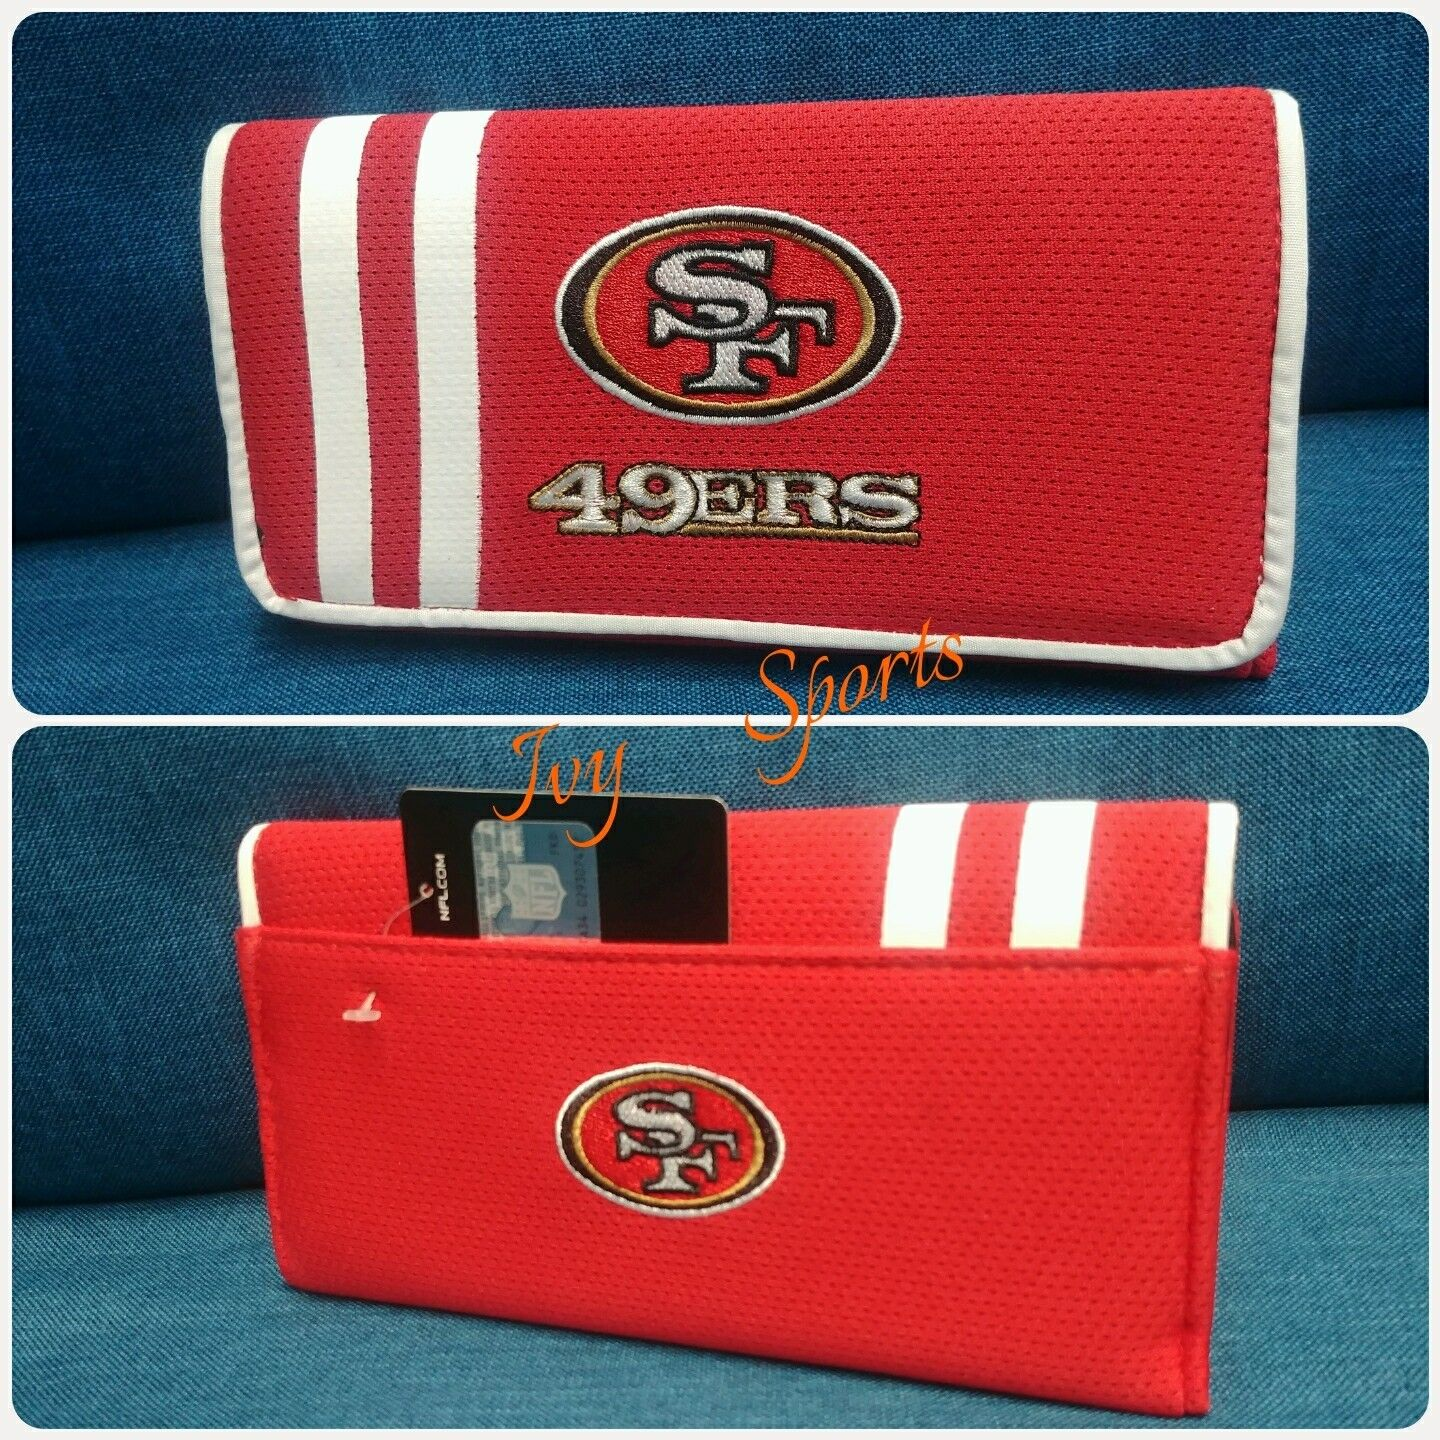 NFL 49ers San Francisco 49ers NFL Bowler Purse with Organizer Mesh Wallet 2018 *Nuovo* f1e2d6